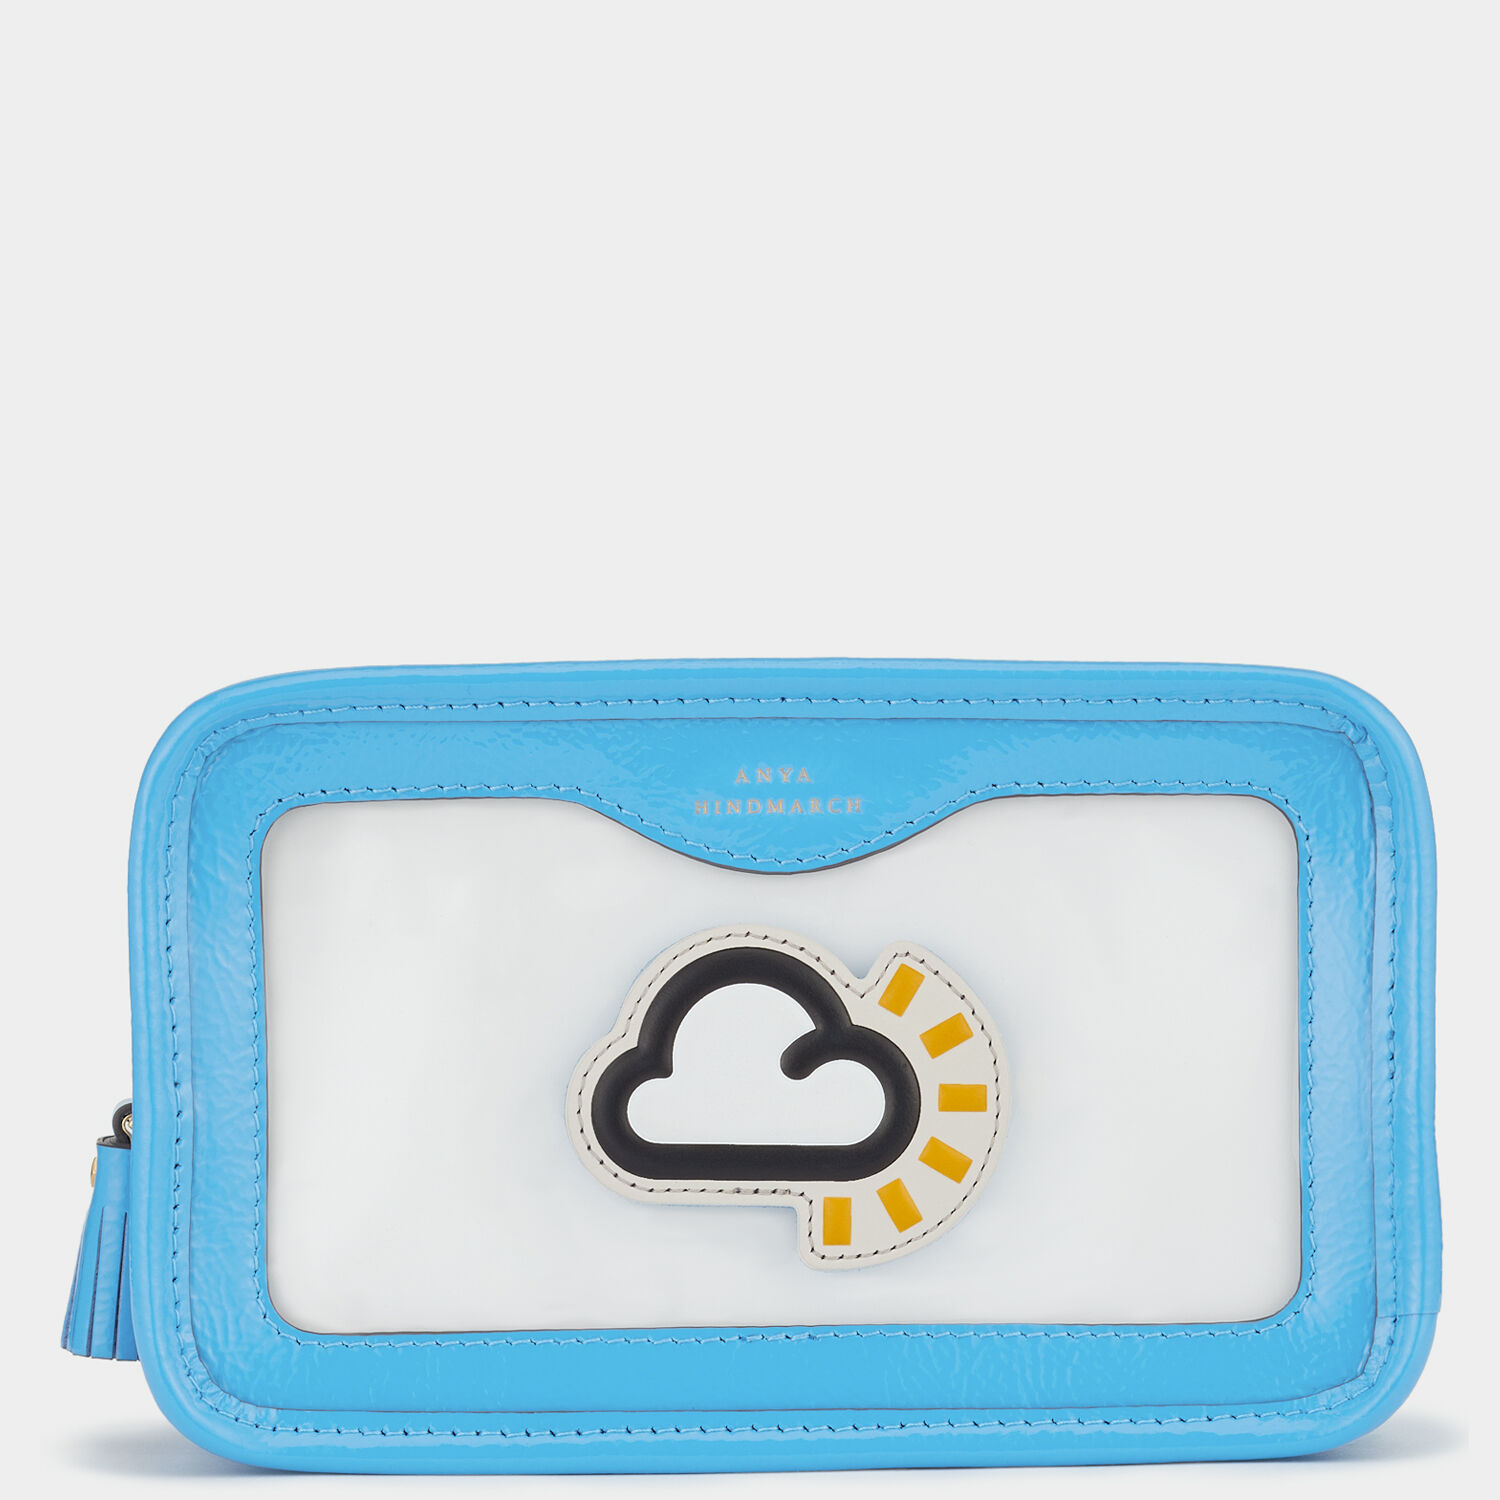 Rainy Day Make Up Pouch by Anya Hindmarch